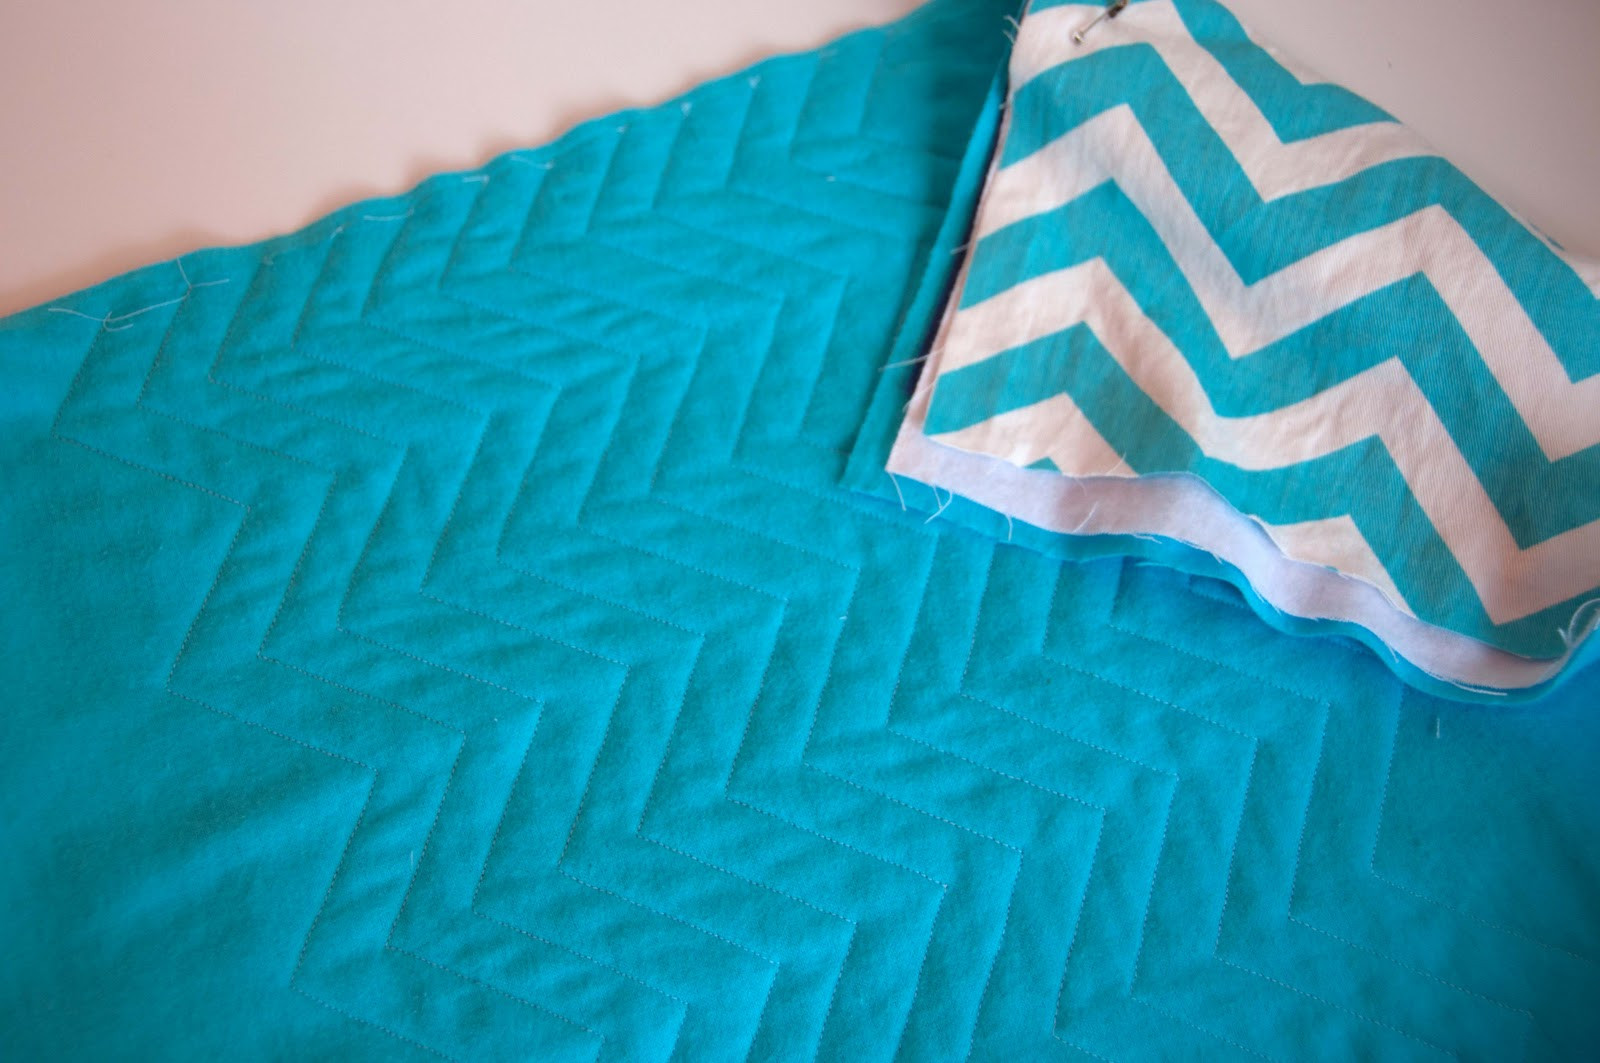 Chevron Baby Blanket Inspirational Aesthetic Nest Sewing Chevron Chenille Baby Blanket Of Attractive 49 Pics Chevron Baby Blanket